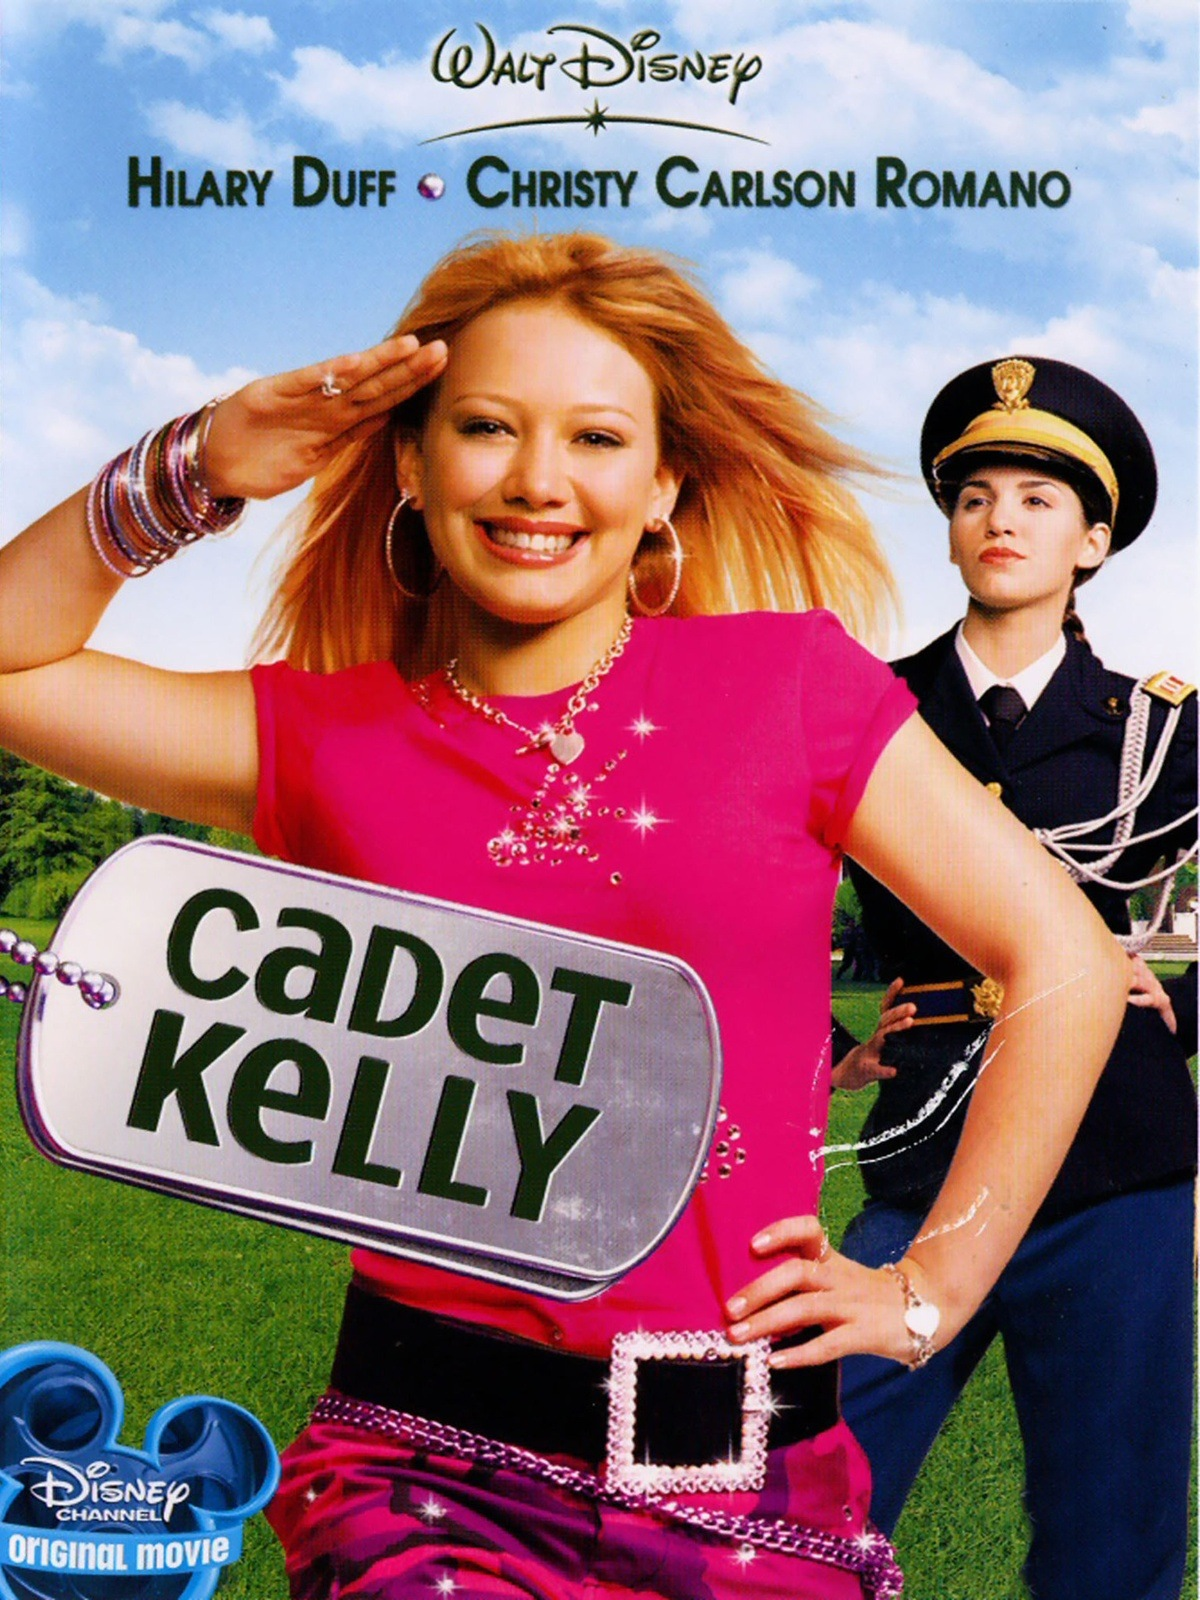 Affiche Poster cadet kelly disney channel original movie